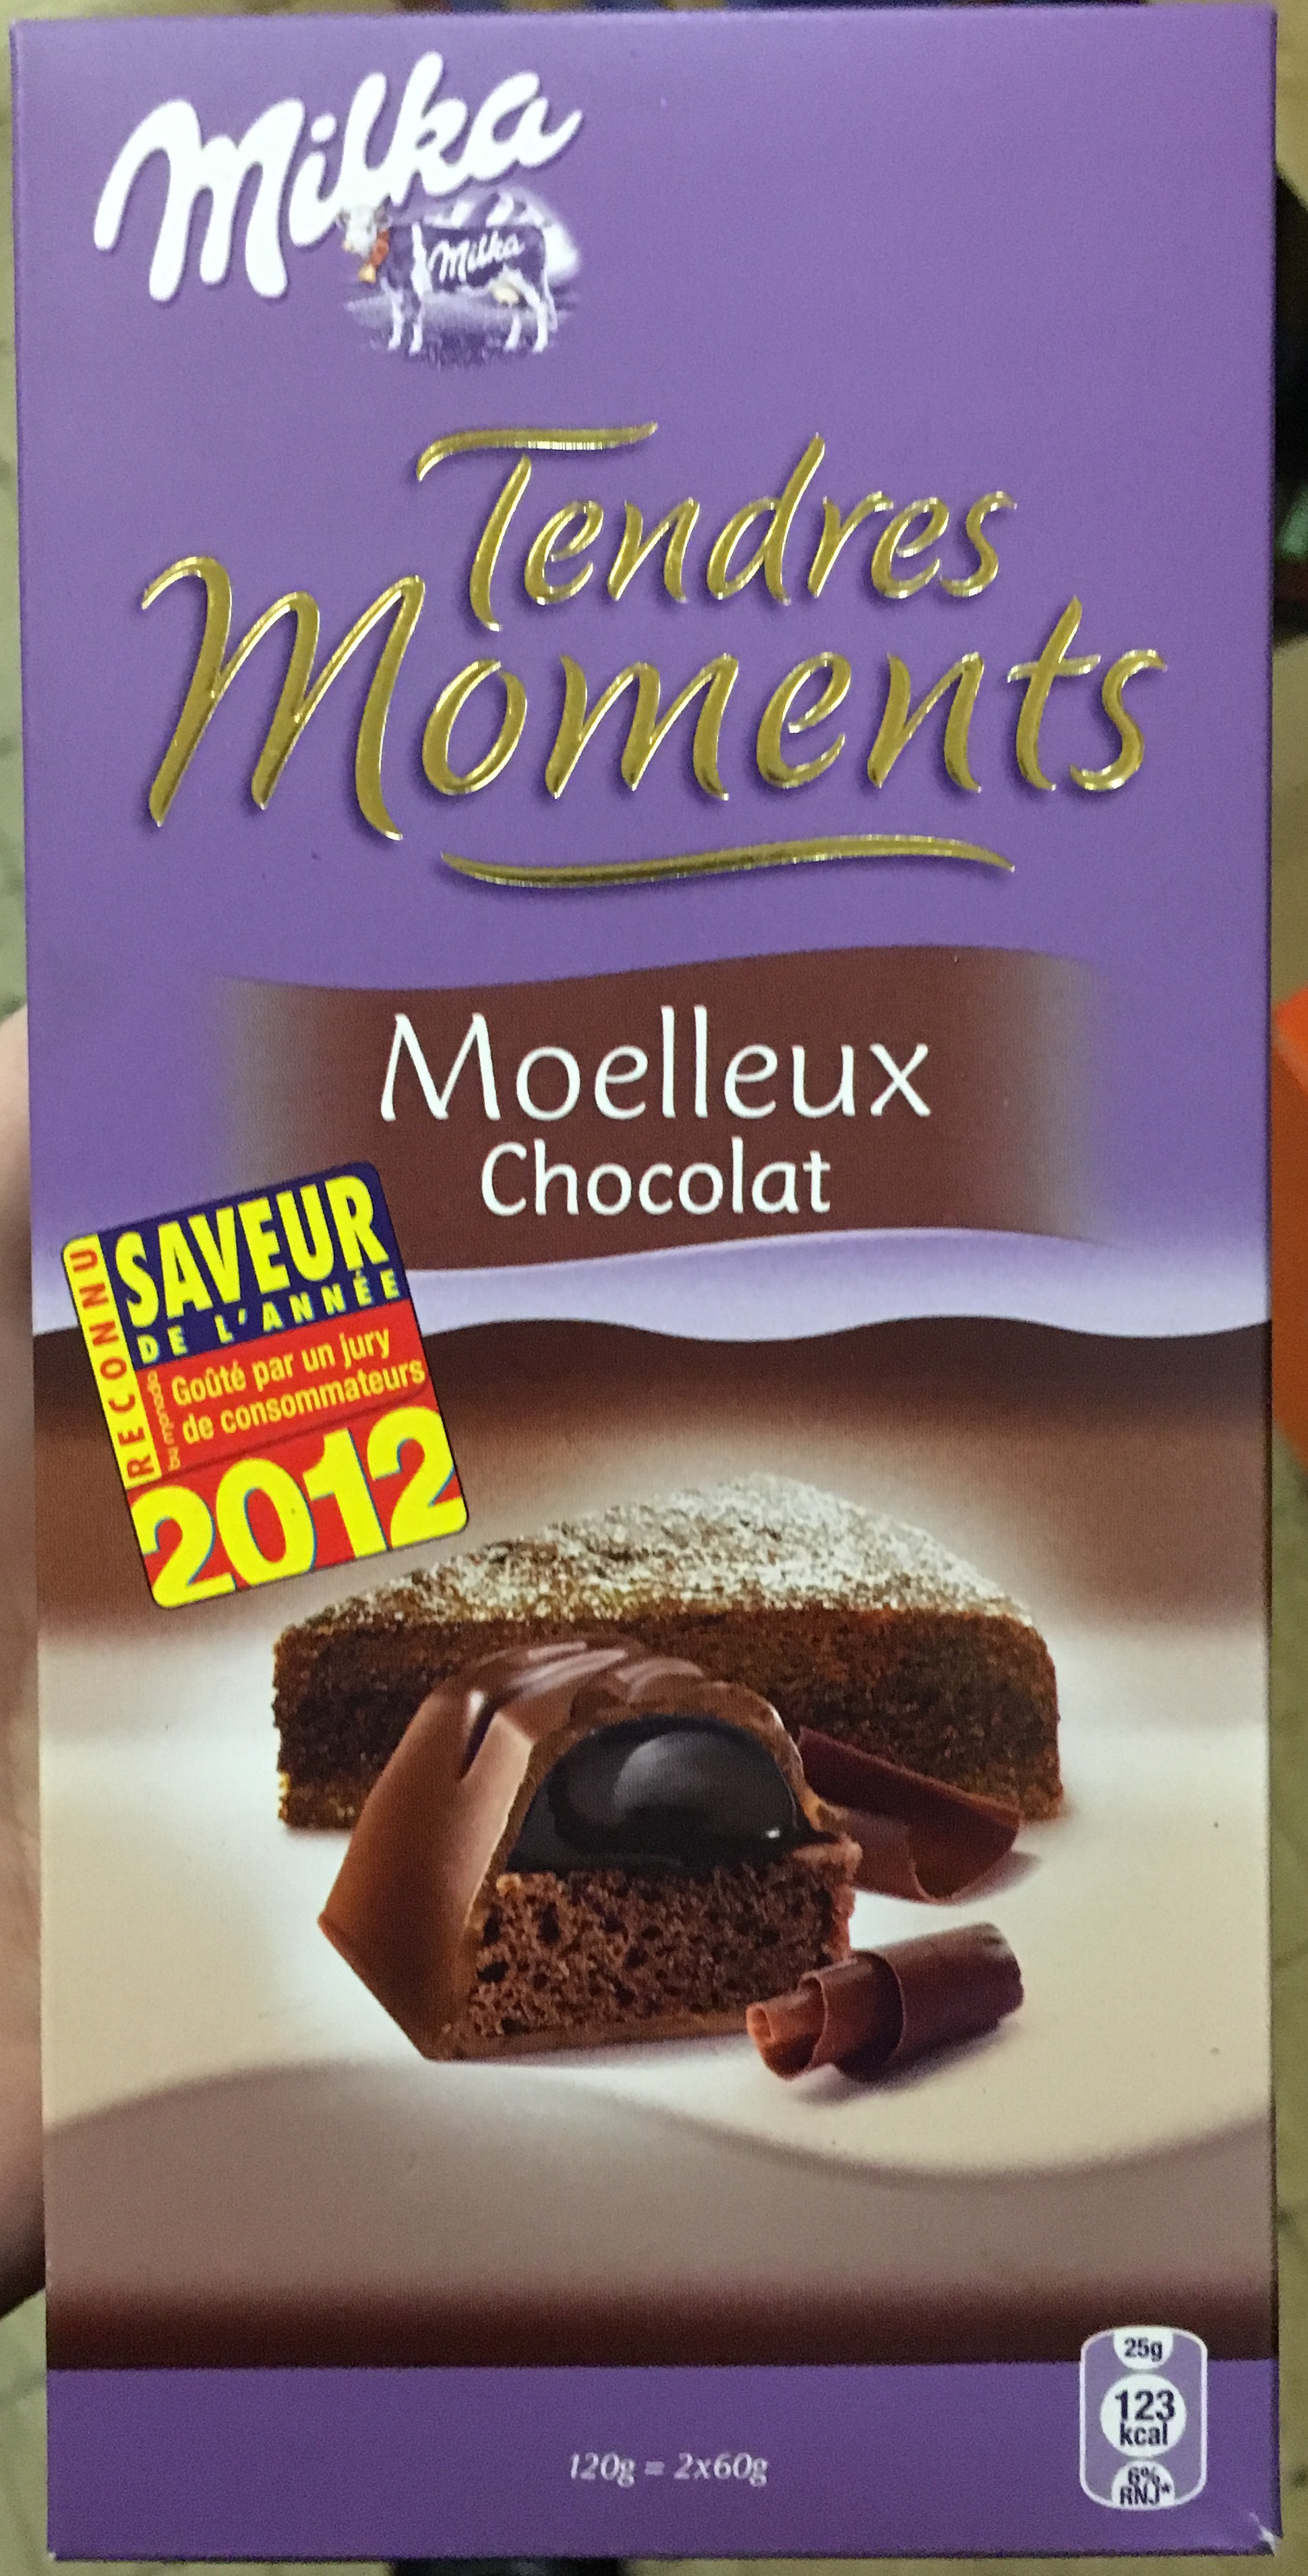 Tendres Moments Moelleux Chocolat - Product - fr